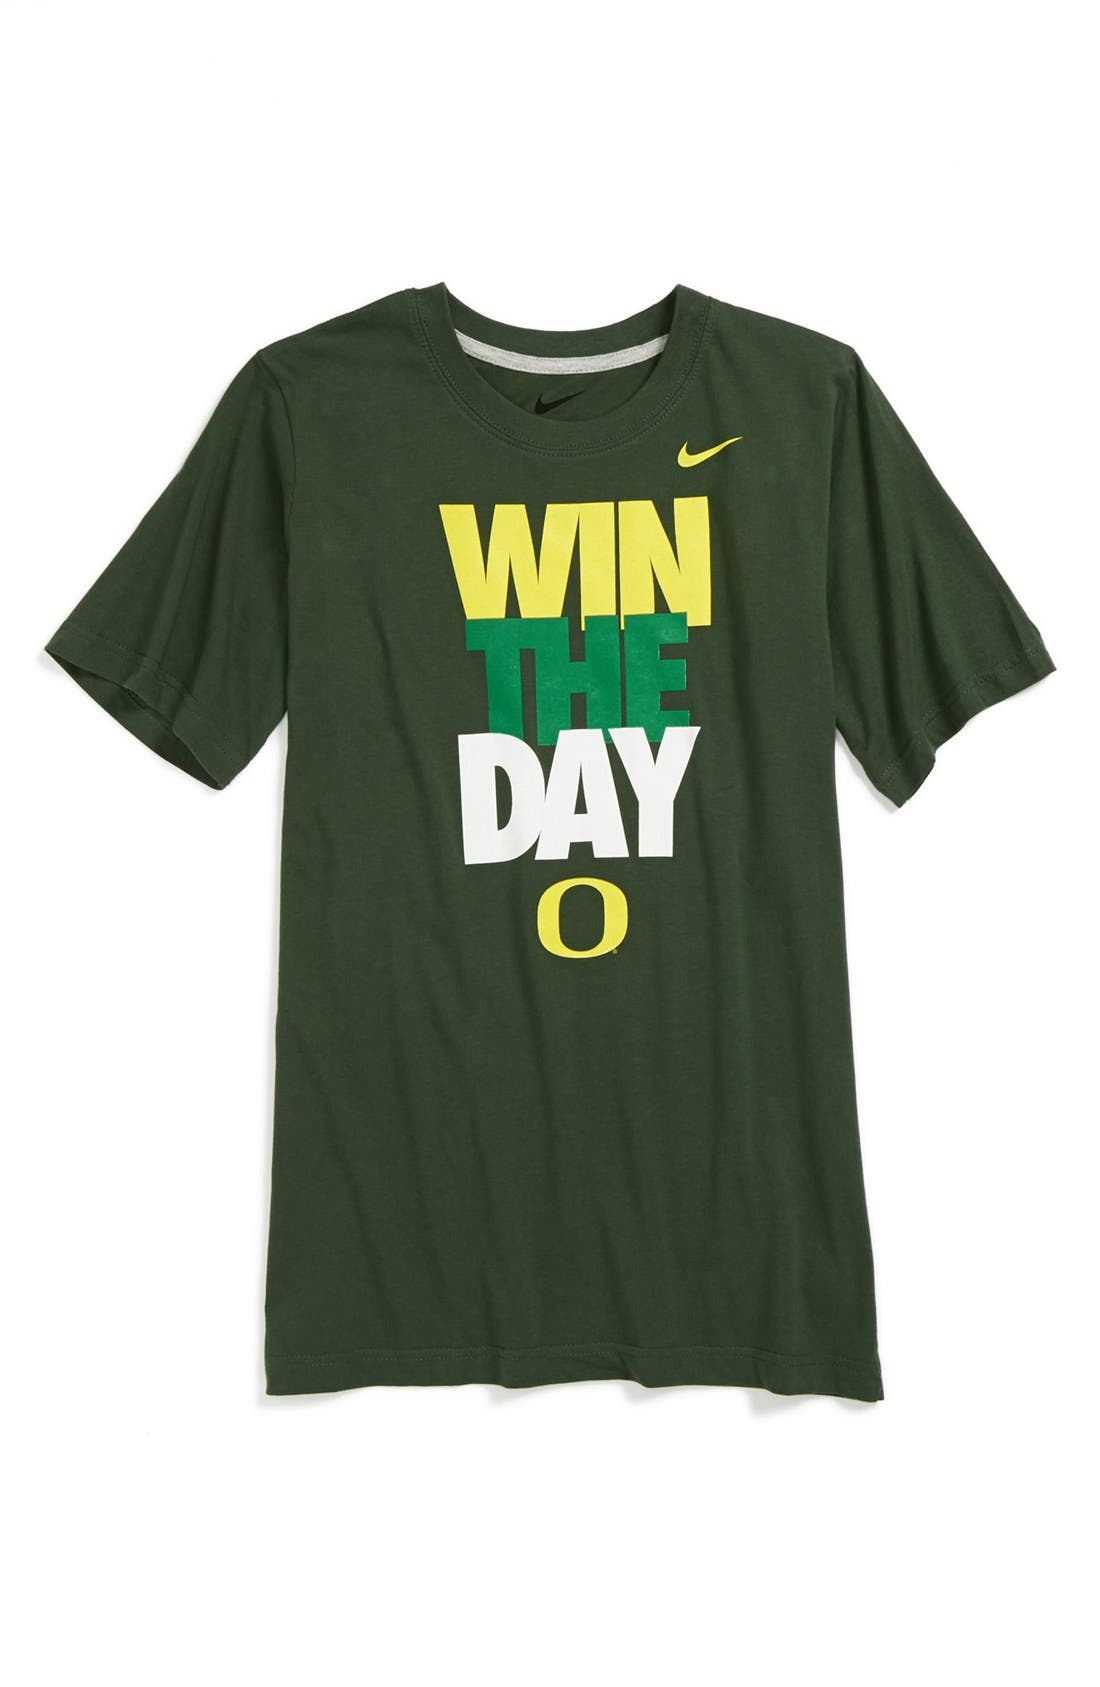 Alternate Image 1 Selected - Nike 'Win the Day - Oregon Ducks' T-Shirt (Big Boys)